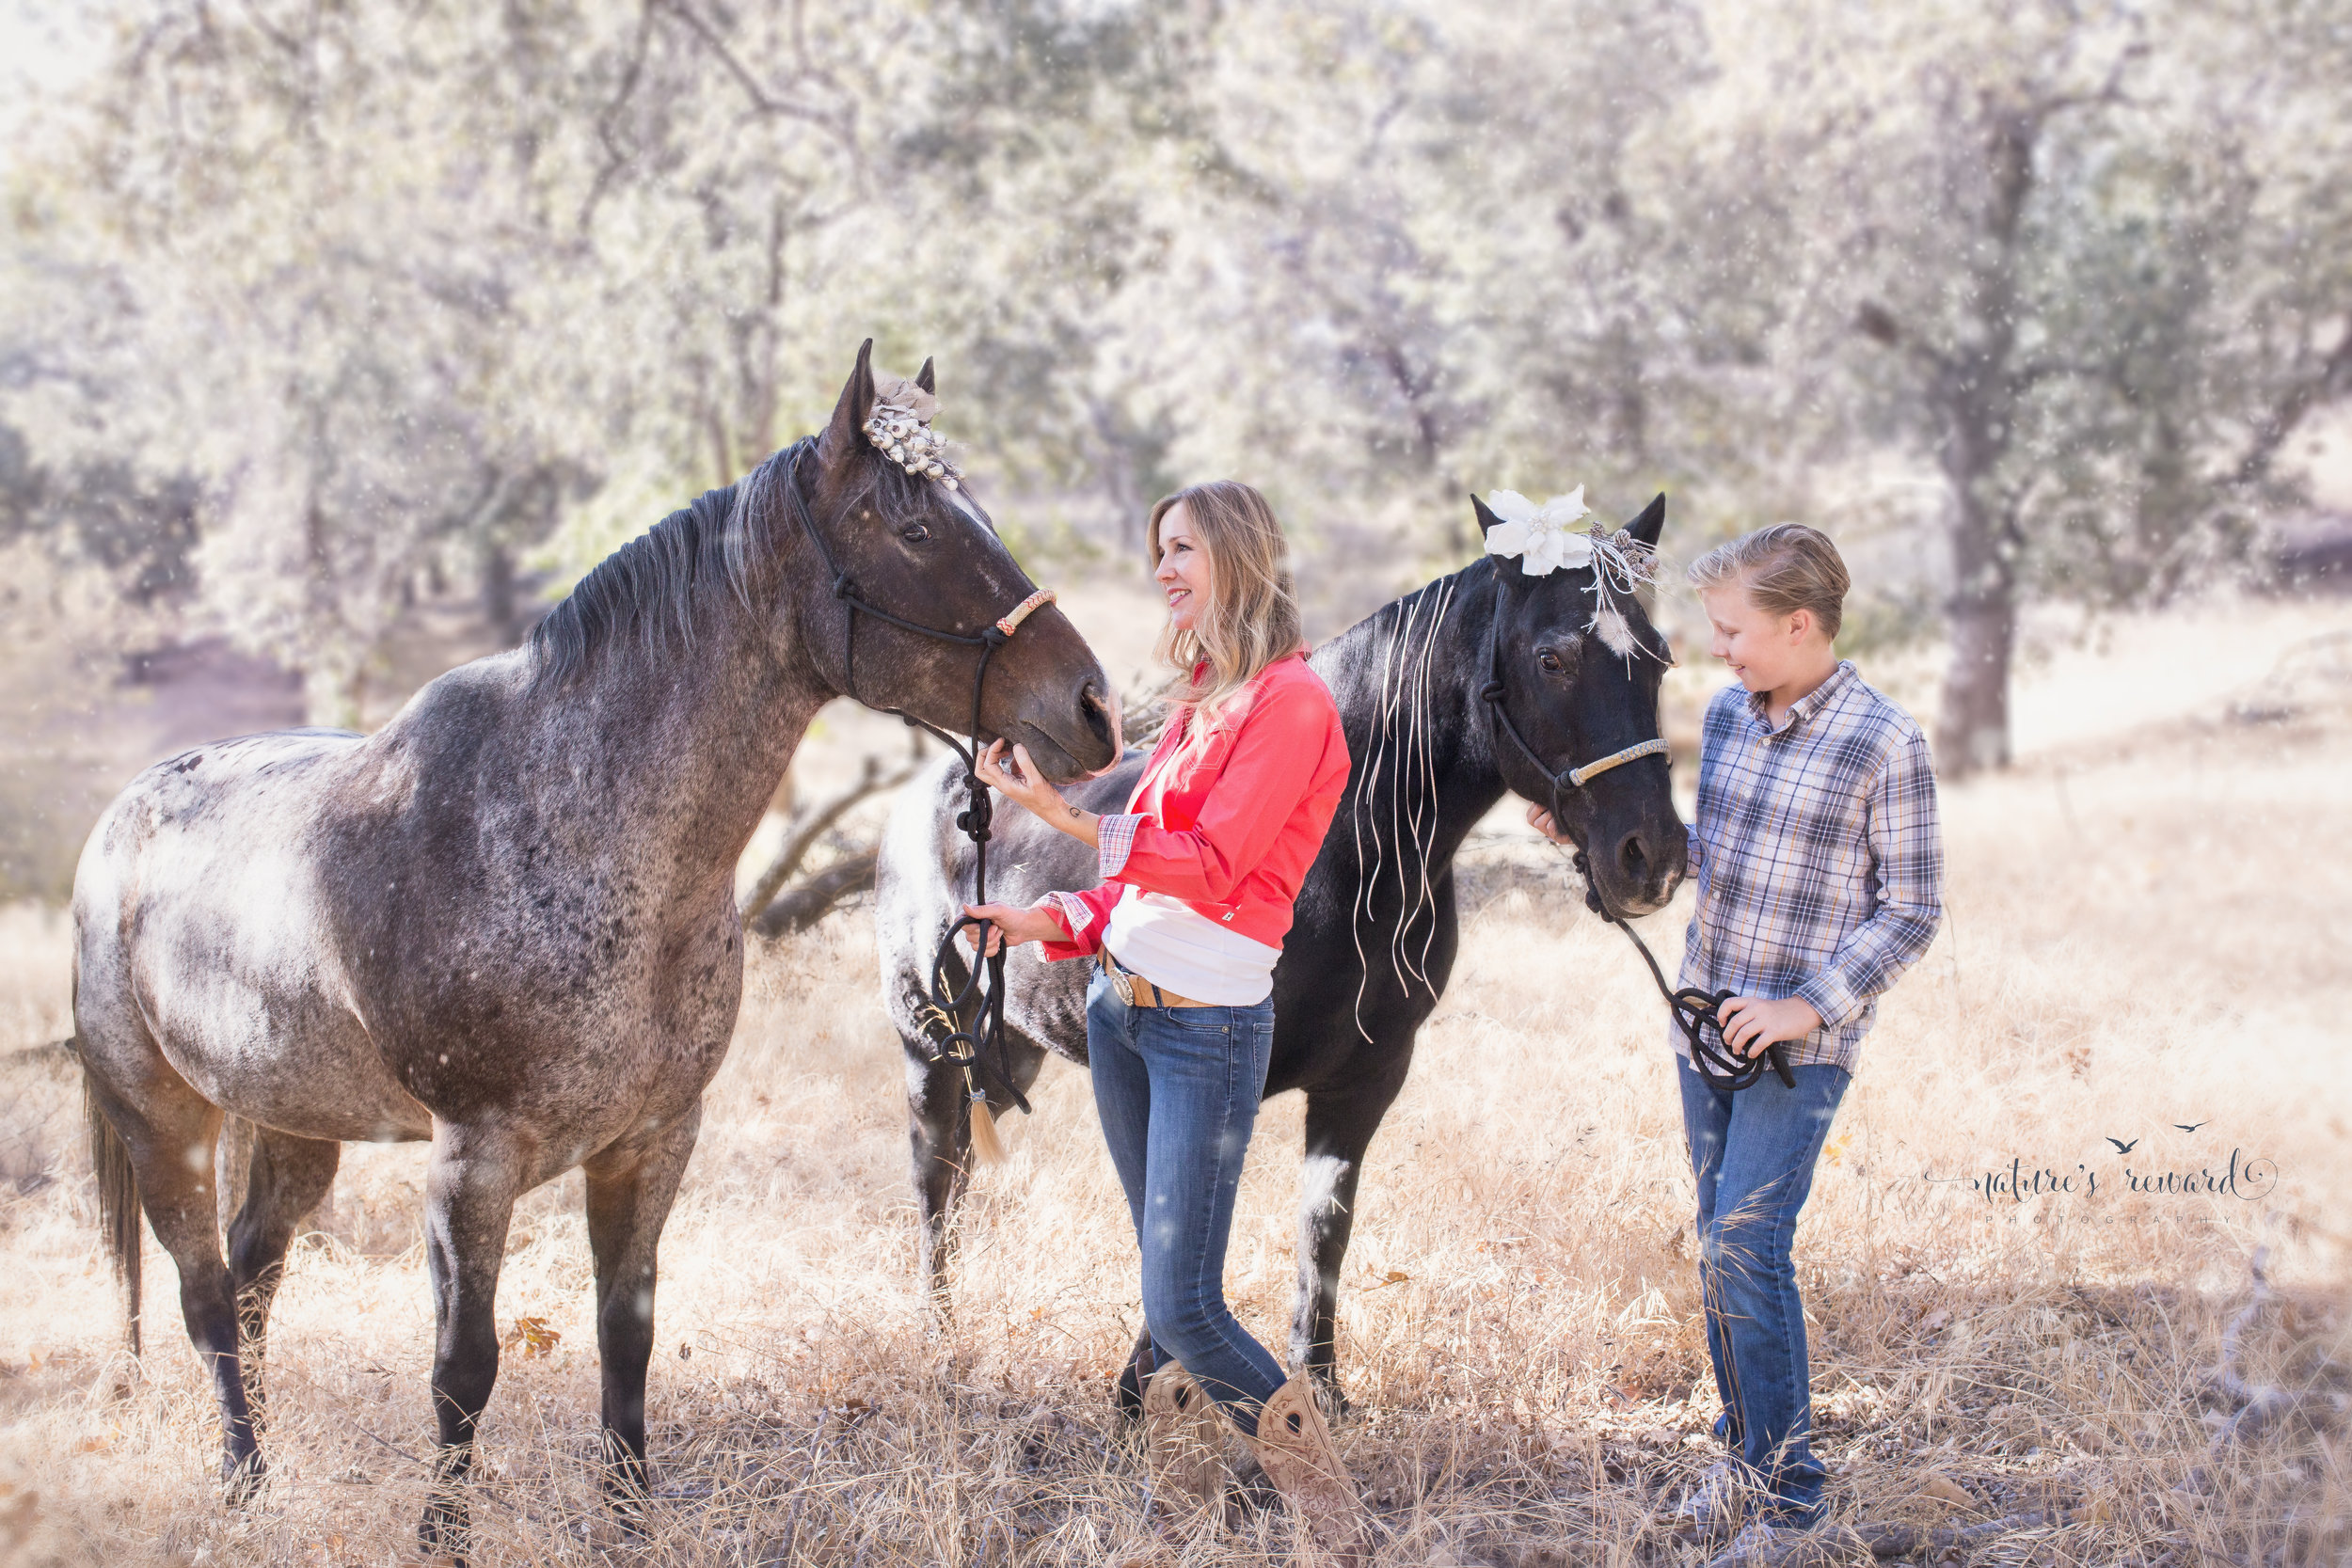 Soft winterized edit- Feather the horse to the left is up for adoption!